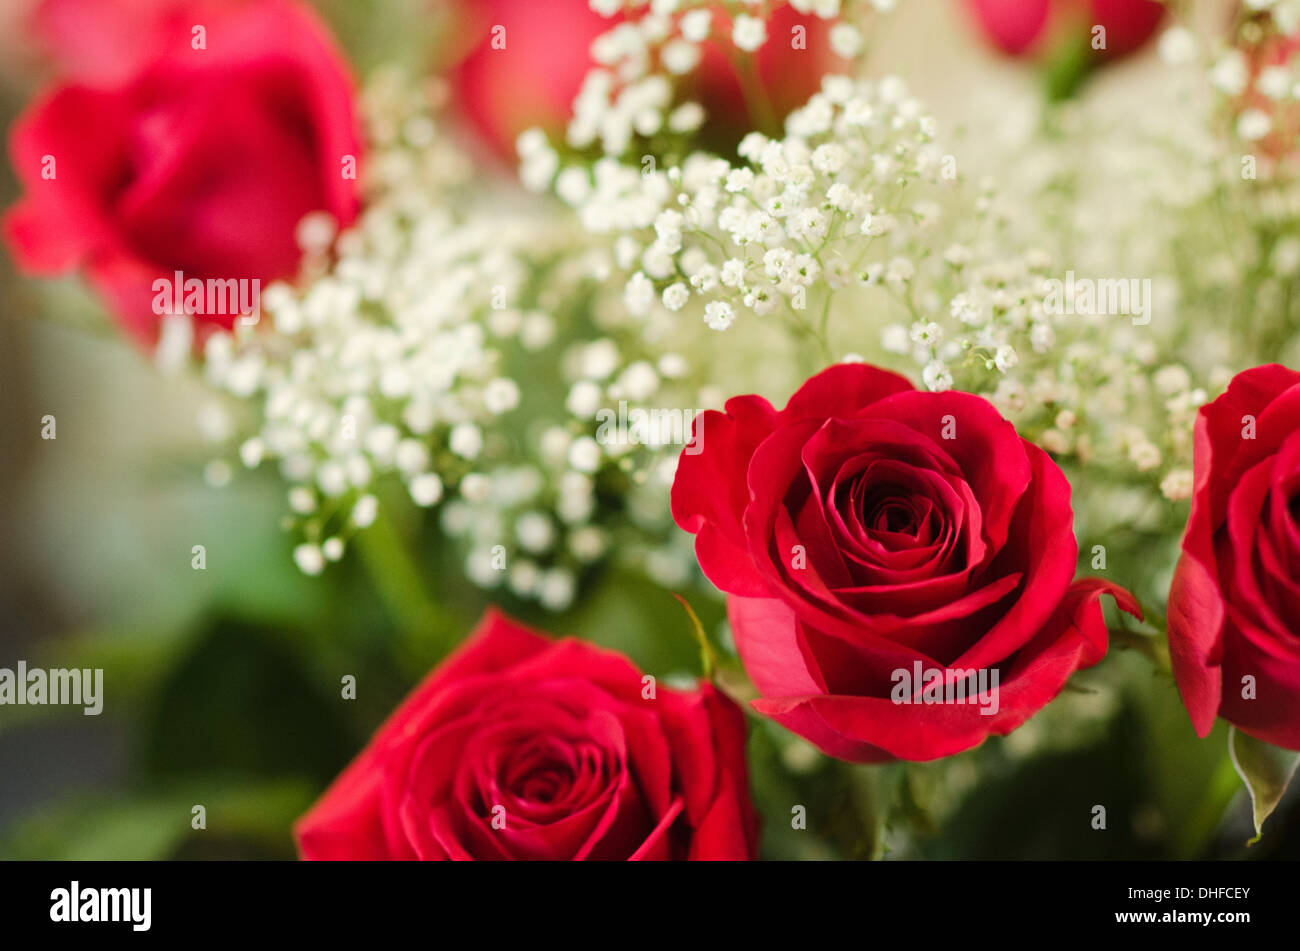 Red Roses Babys Breath Stock Photos Amp Red Roses Babys